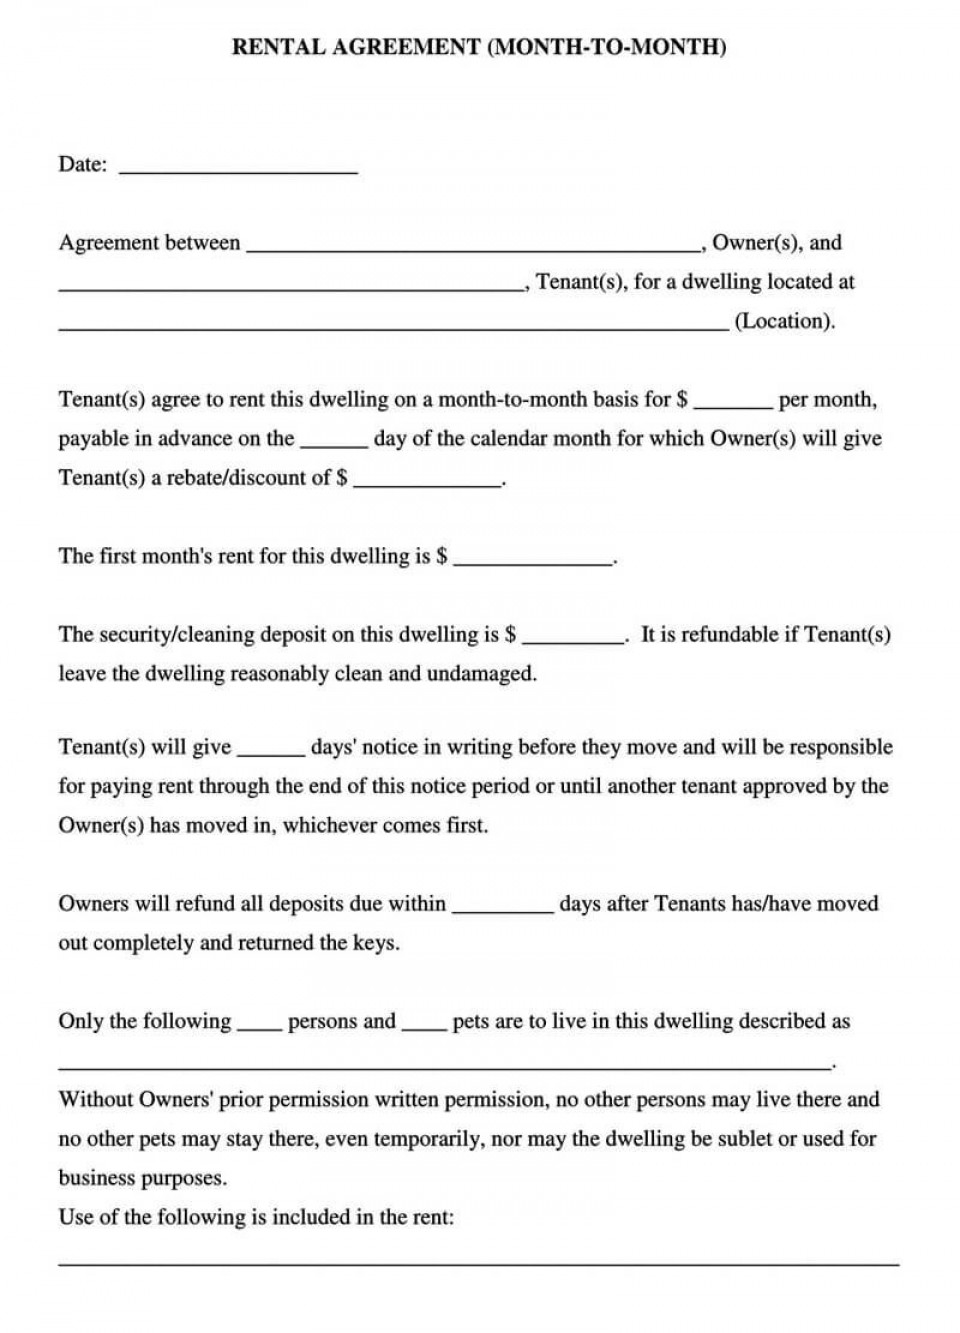 007 Shocking Template For Lease Agreement Free Photo  Printable Room Rental Commercial Uk Florida960